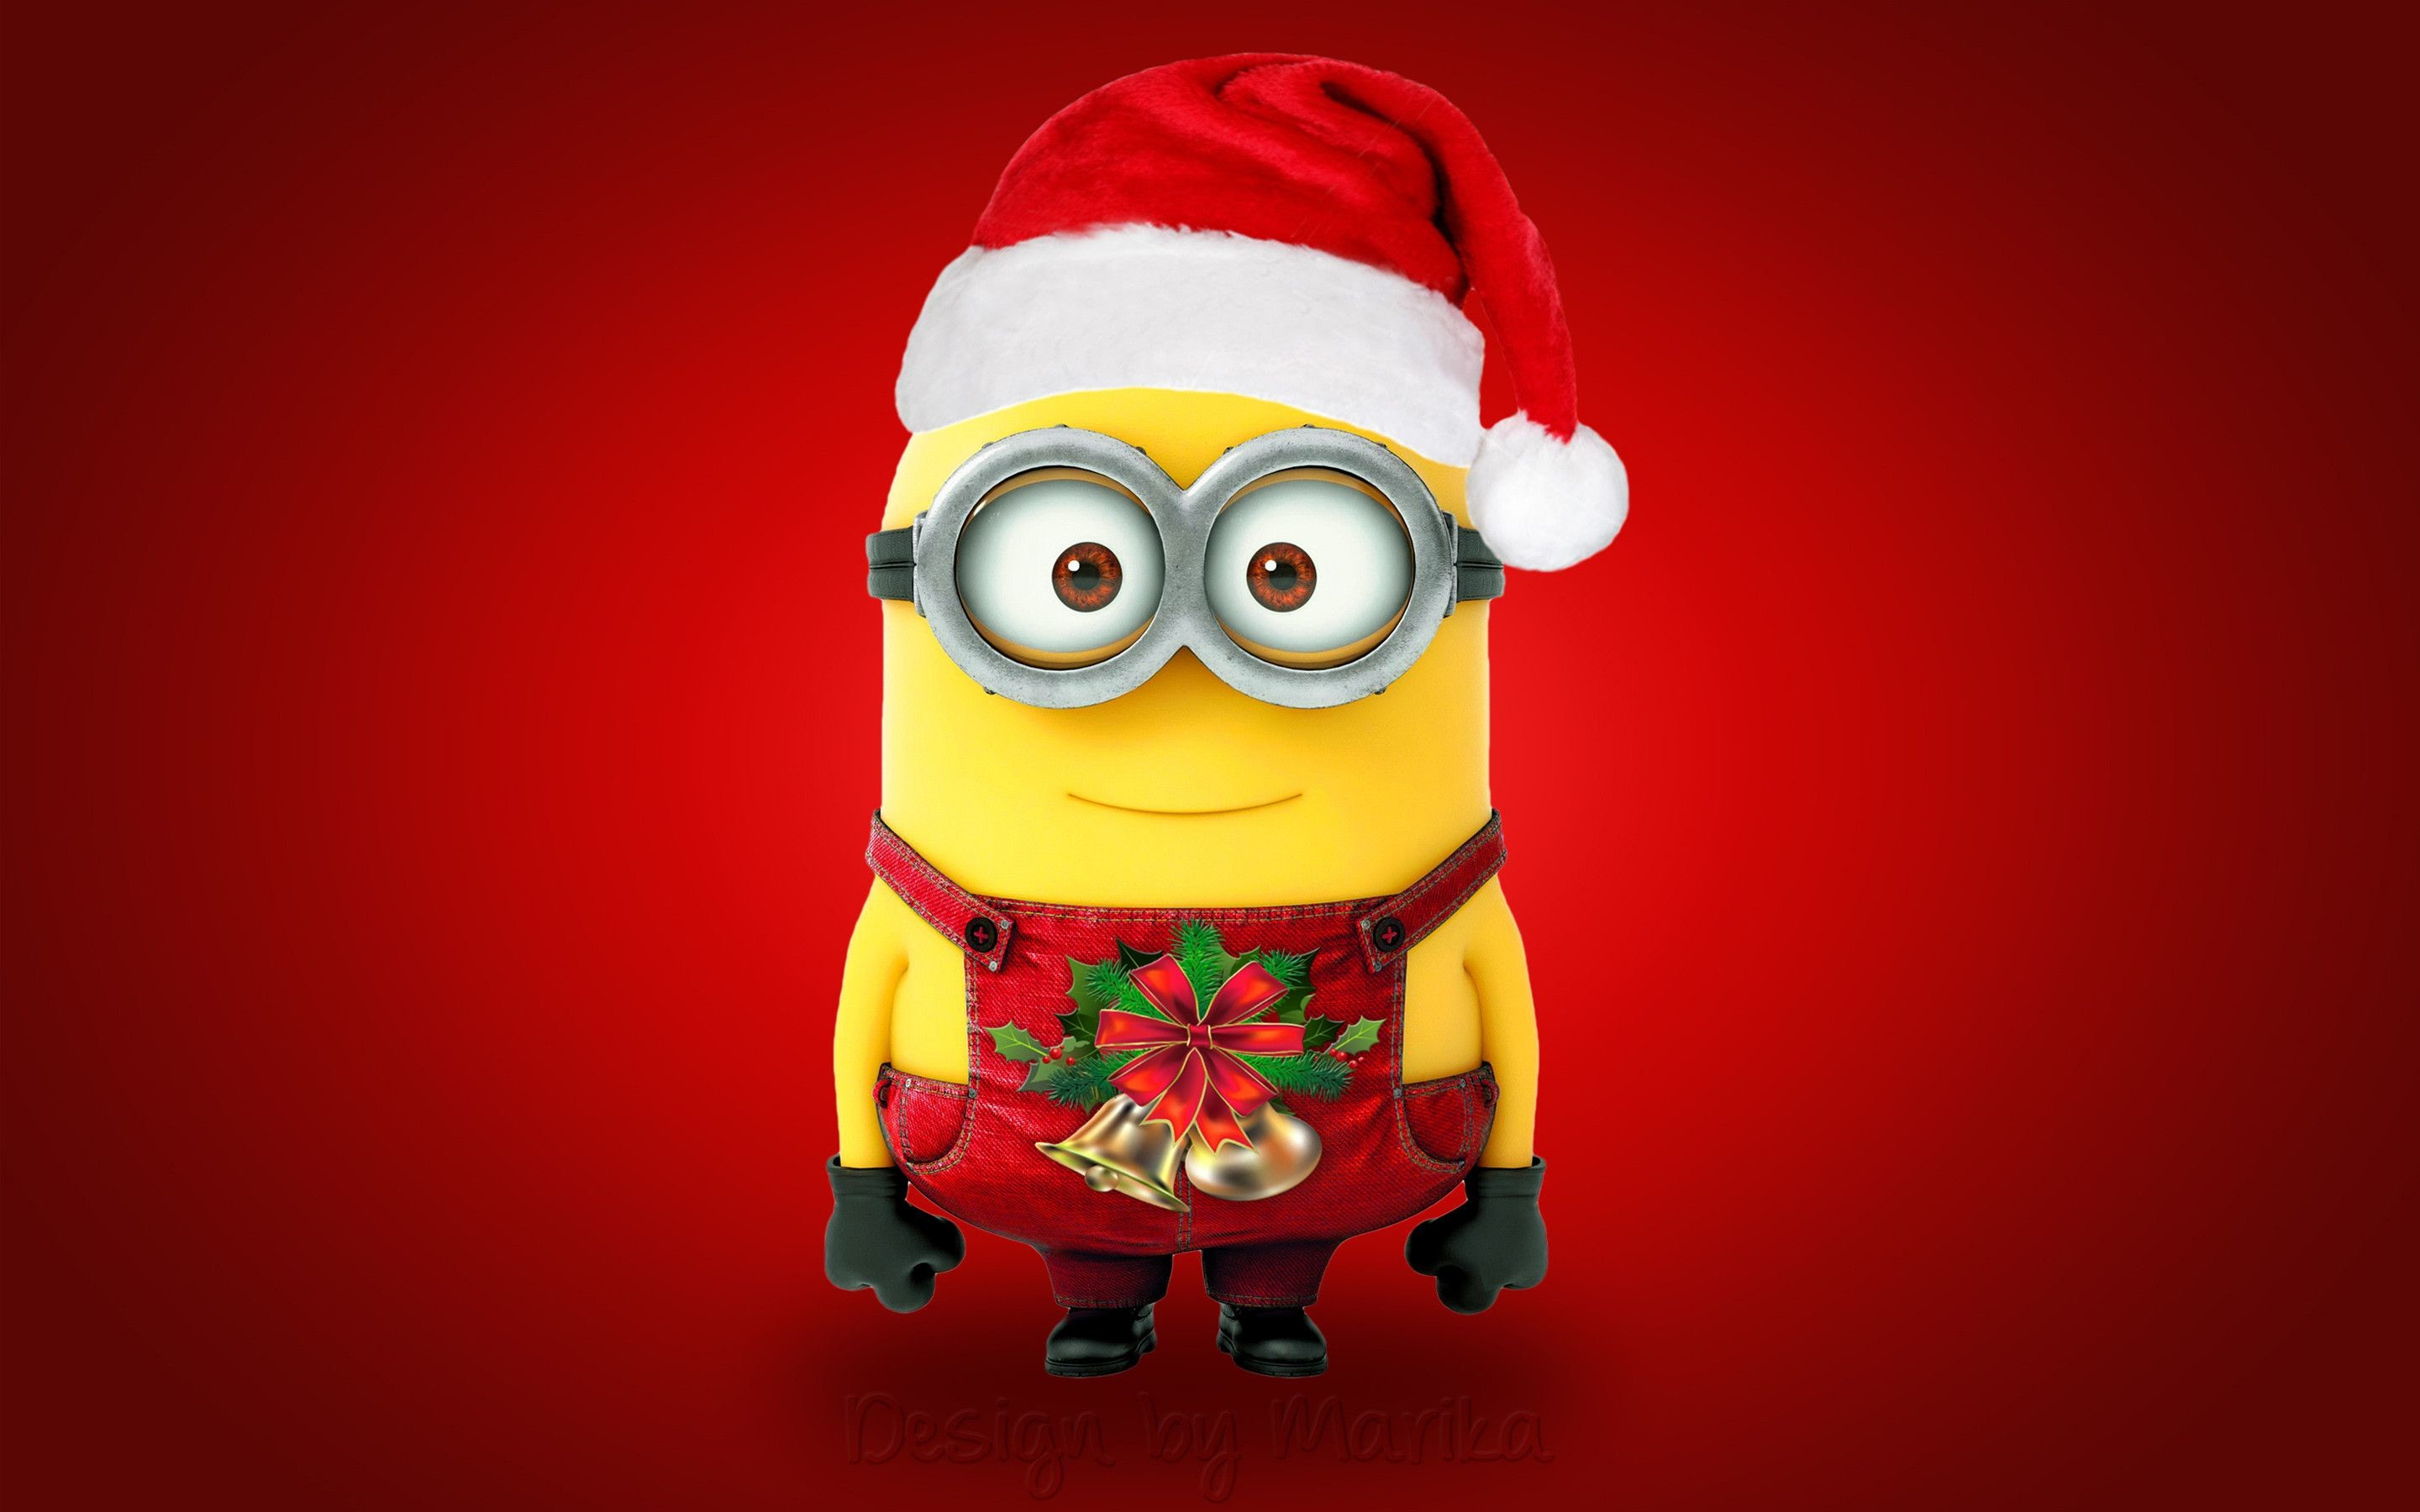 Res: 2880x1800, Merry Christmas Minions wallpaper mouse pad computer mousepad: Heat  Transforming Printing Technology made the picture is vivid,Easy cleaning,No  Fade